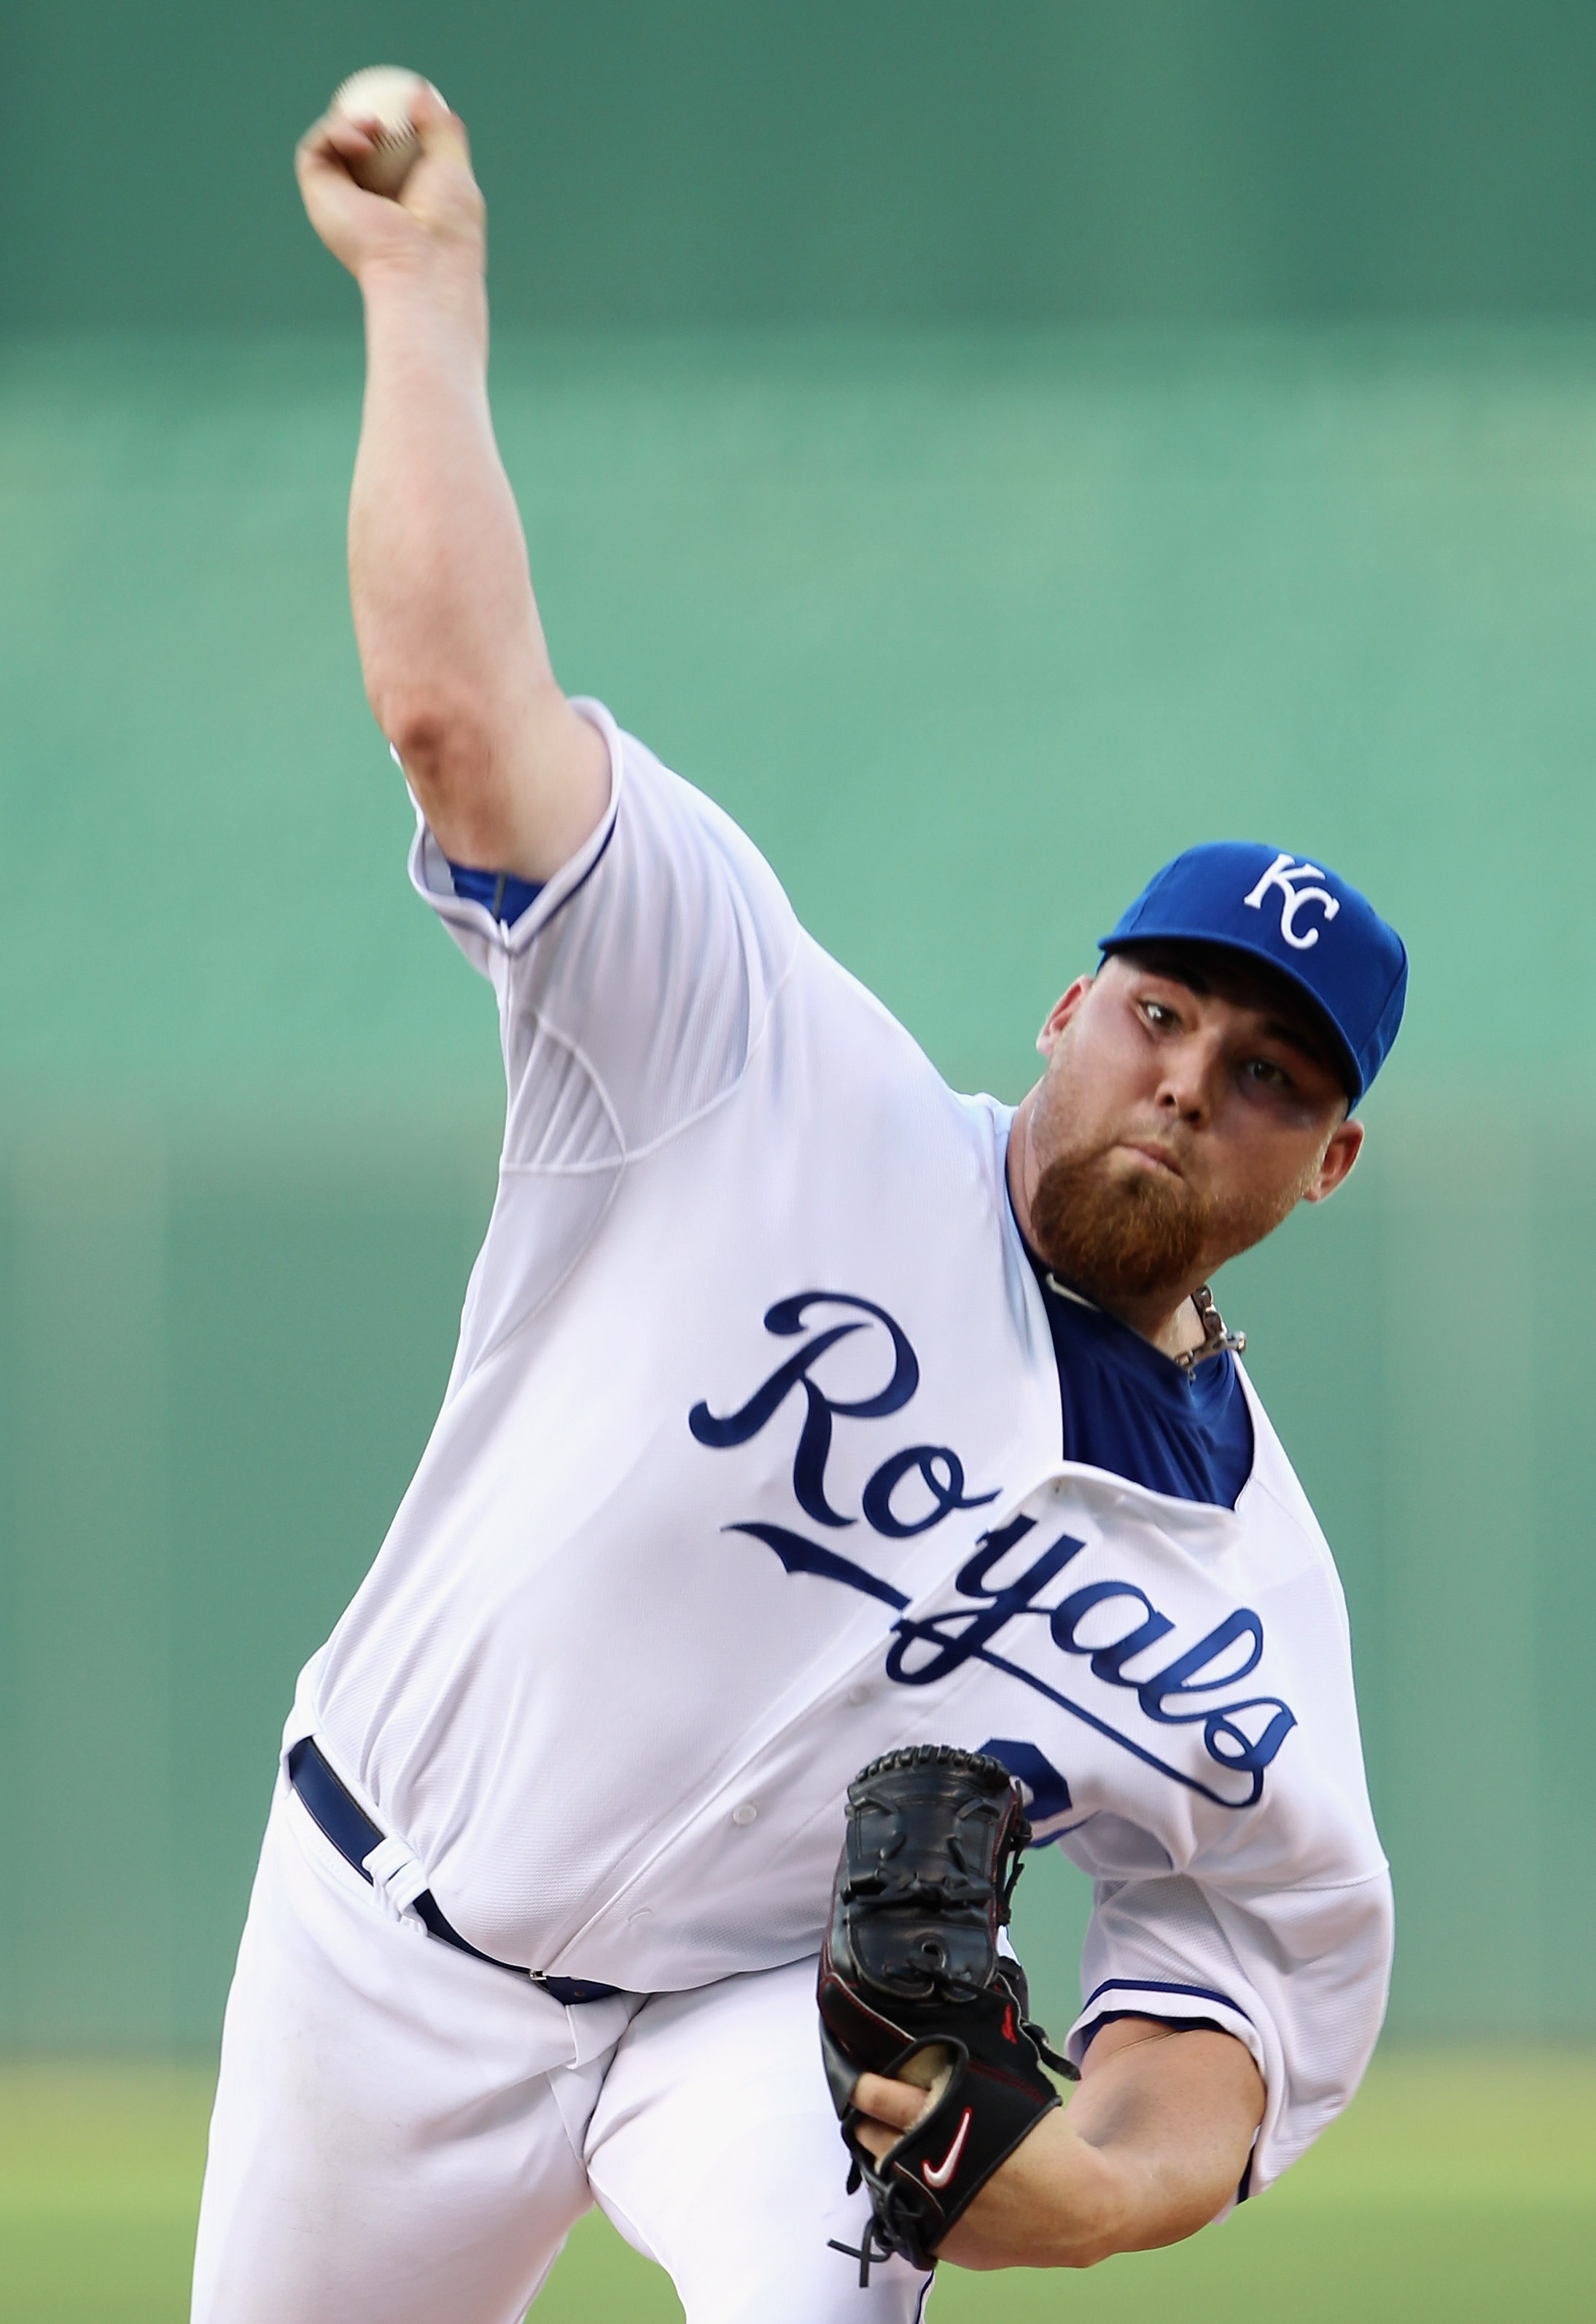 KANSAS CITY, MO - JULY 30:  Starting pitcher Sean O'Sullivan #37 of the Kansas City Royals warms-up just prior to the start of the game against the Baltimore Orioles on July 30, 2010 at Kauffman Stadium in Kansas City, Missouri.  (Photo by Jamie Squire/Ge